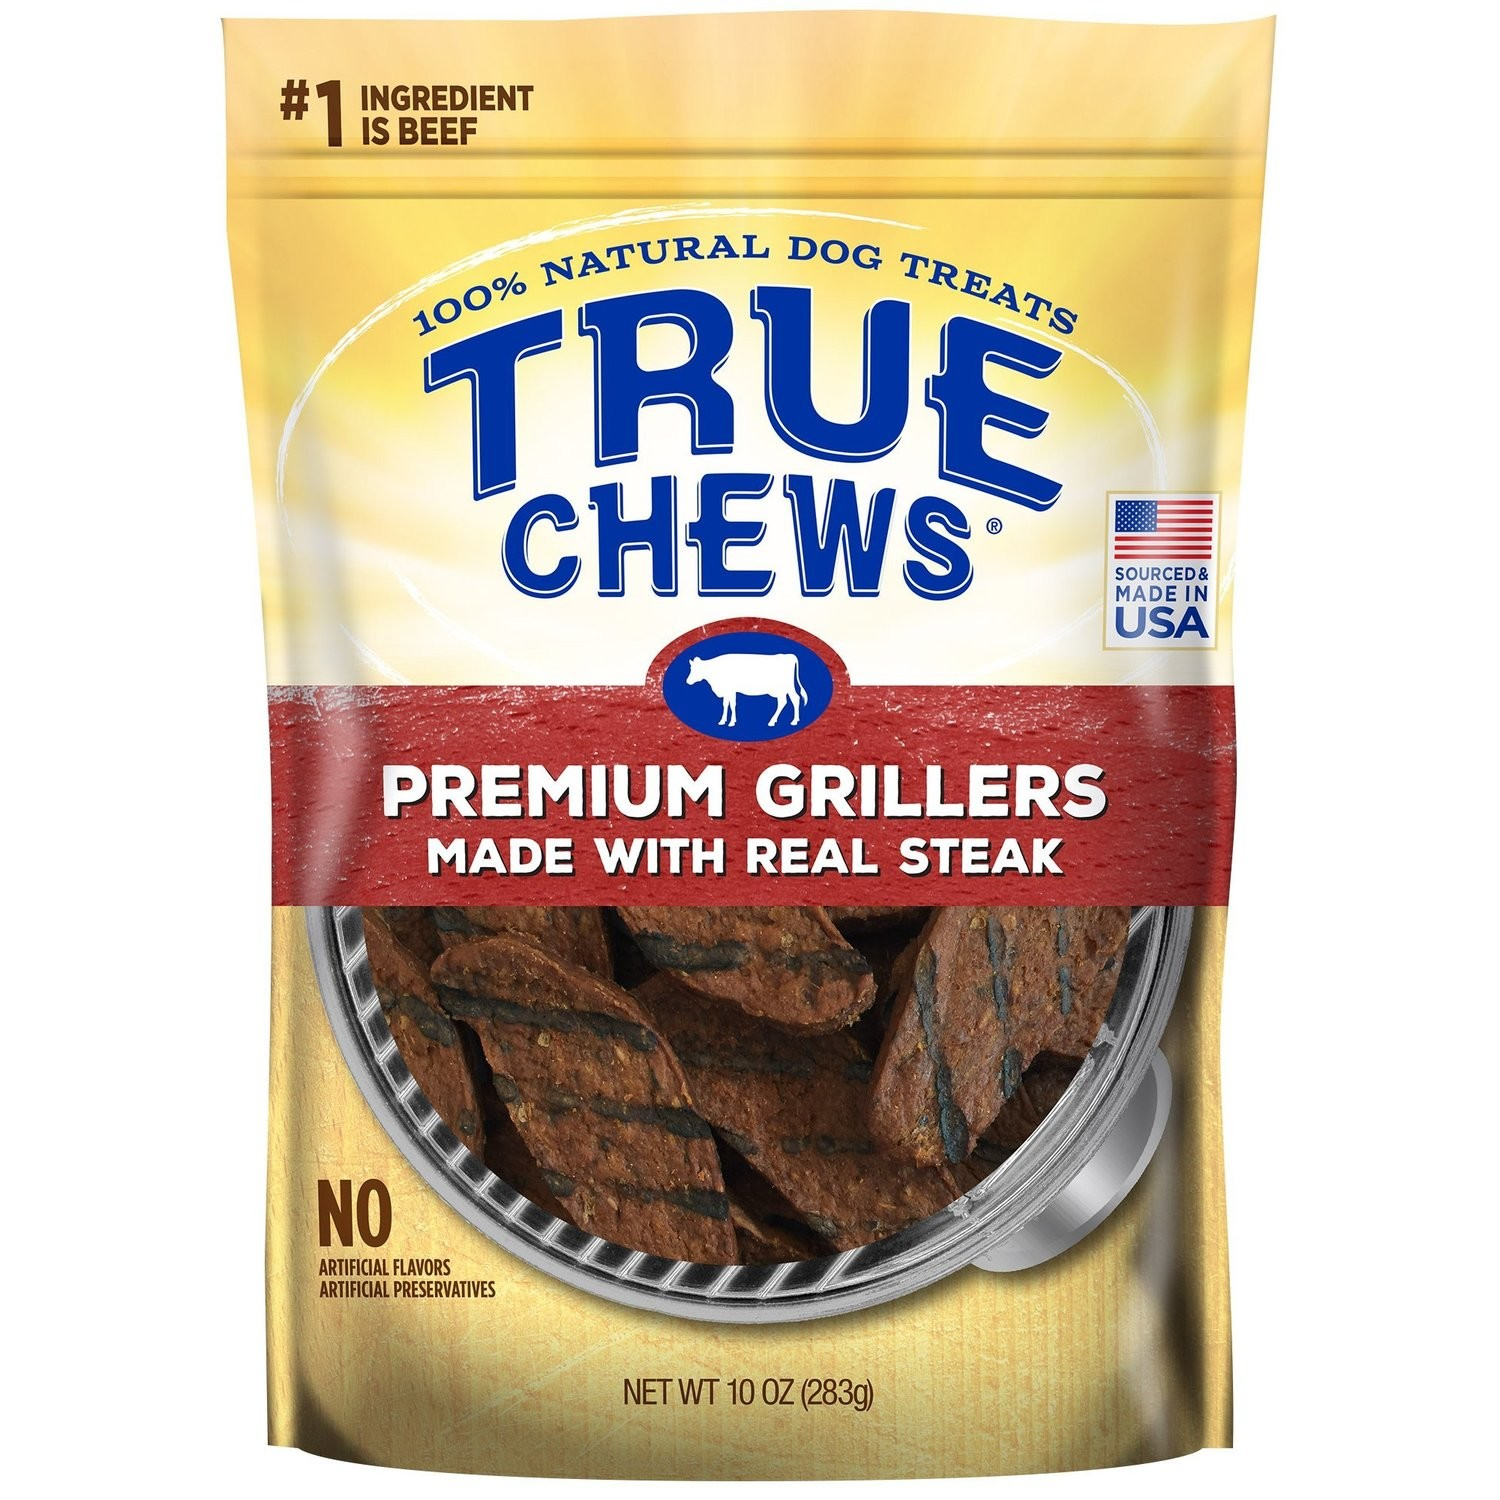 True Chews Premium Grillers Made with Real Steak Natural Dog Treats, 10 oz. (5/19) (T.G2/DT)